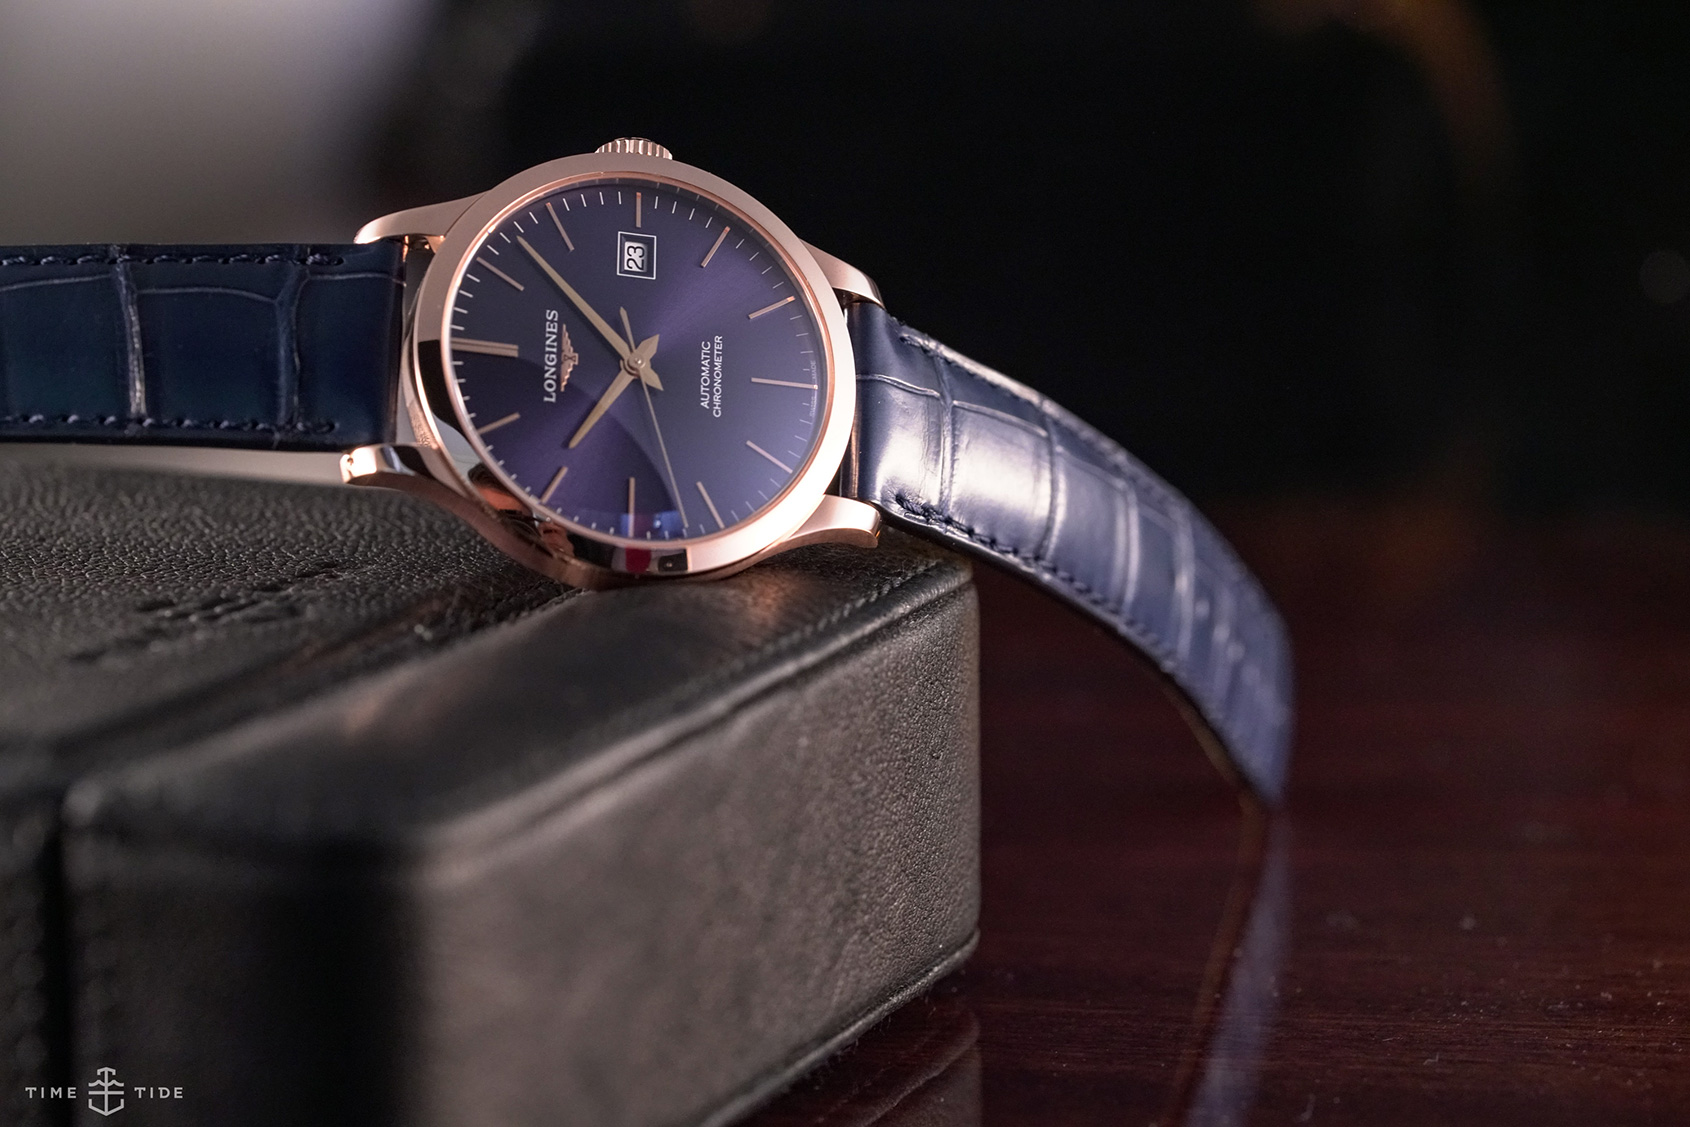 HANDS-ON: The Longines Record – going for gold